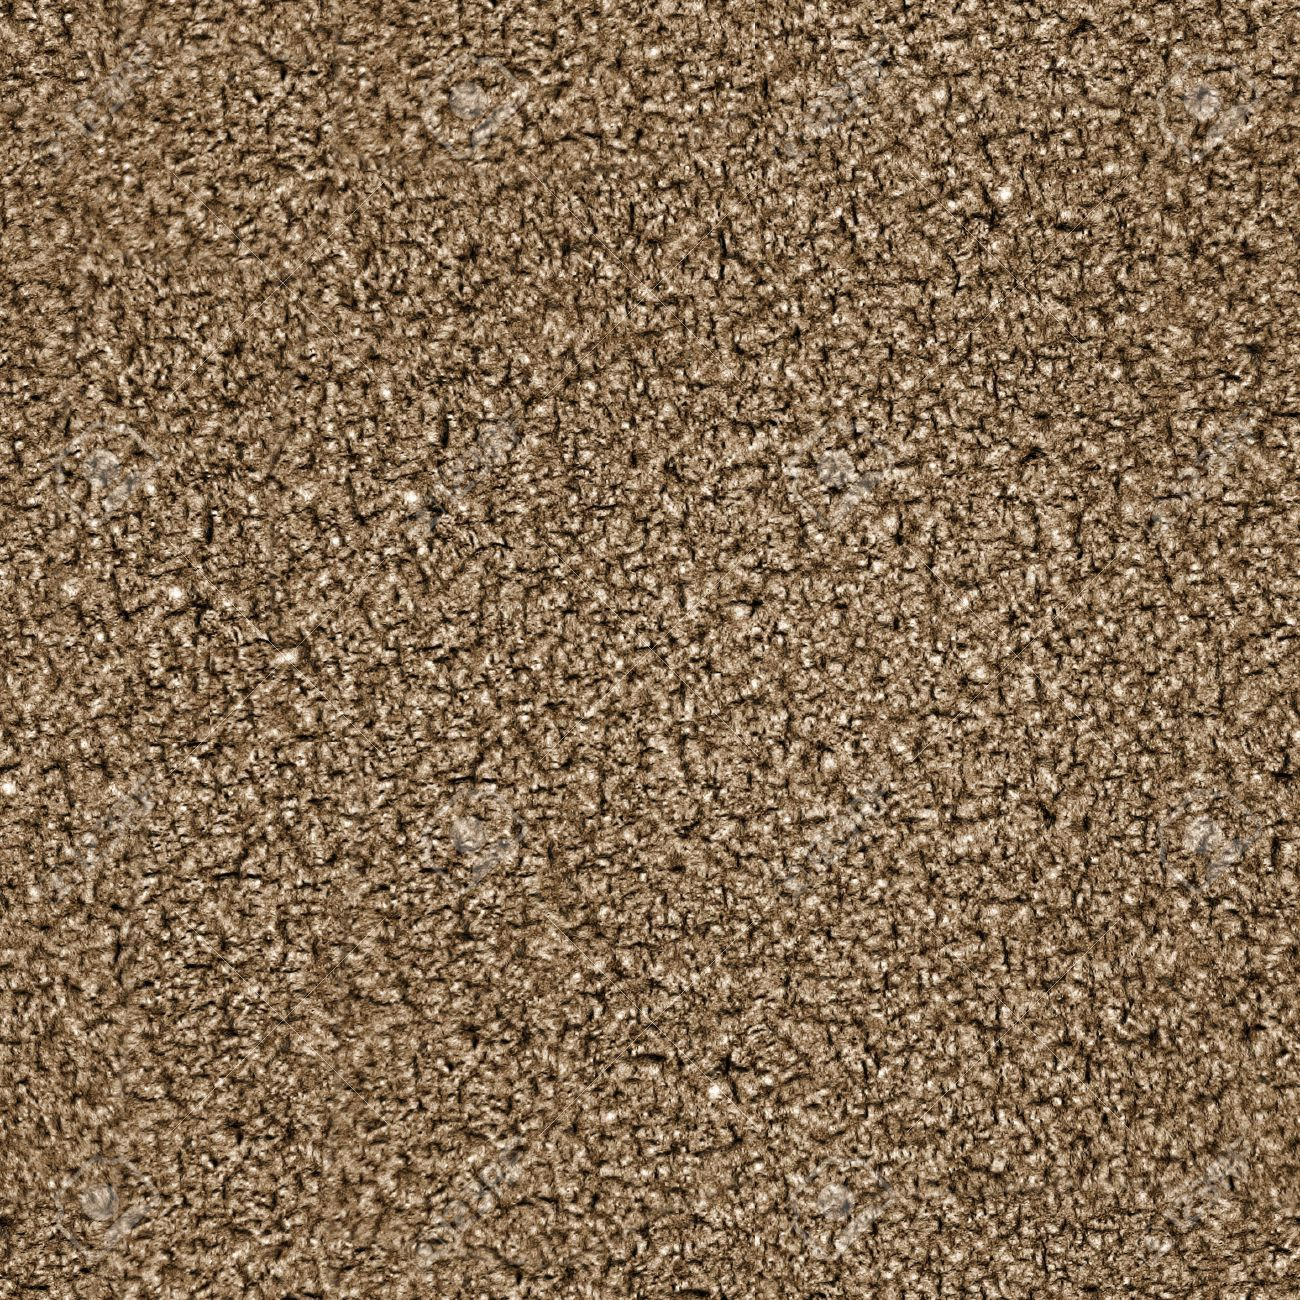 Image result for brown carpet texture seamless | design project ... for Seamless Carpet Textures  585eri